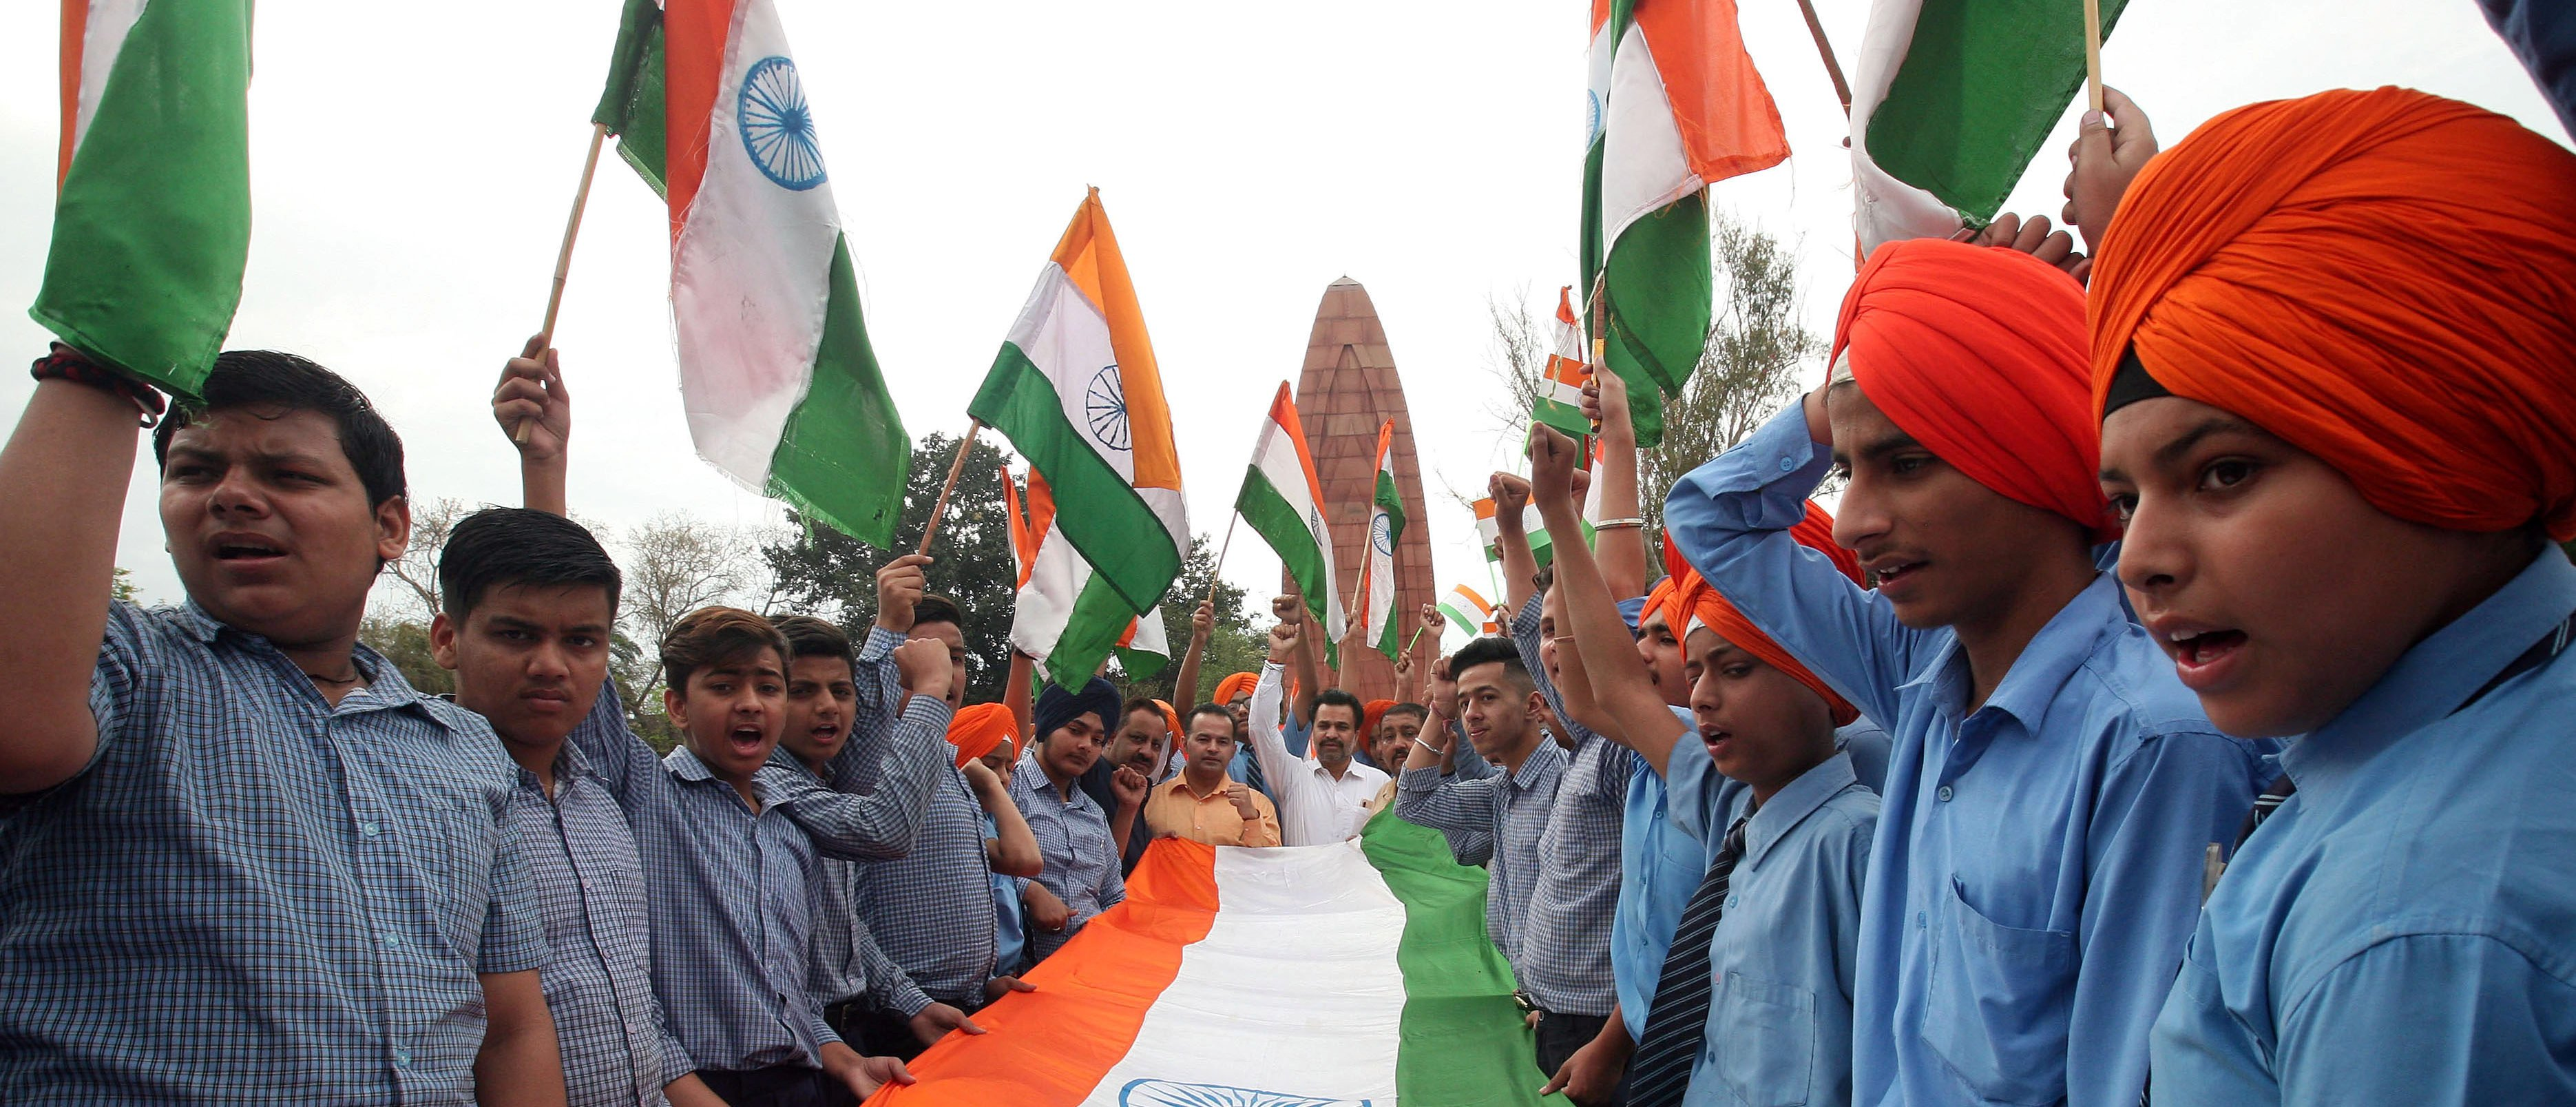 Students hold a giant Indian national flag during a ceremony to pay homage at the Jallianwala Bagh memorial to mark 100th anniversary of Jallianwala Bagh massacre in Amritsar, India, April 12, 2019. REUTERS/Munish Sharma